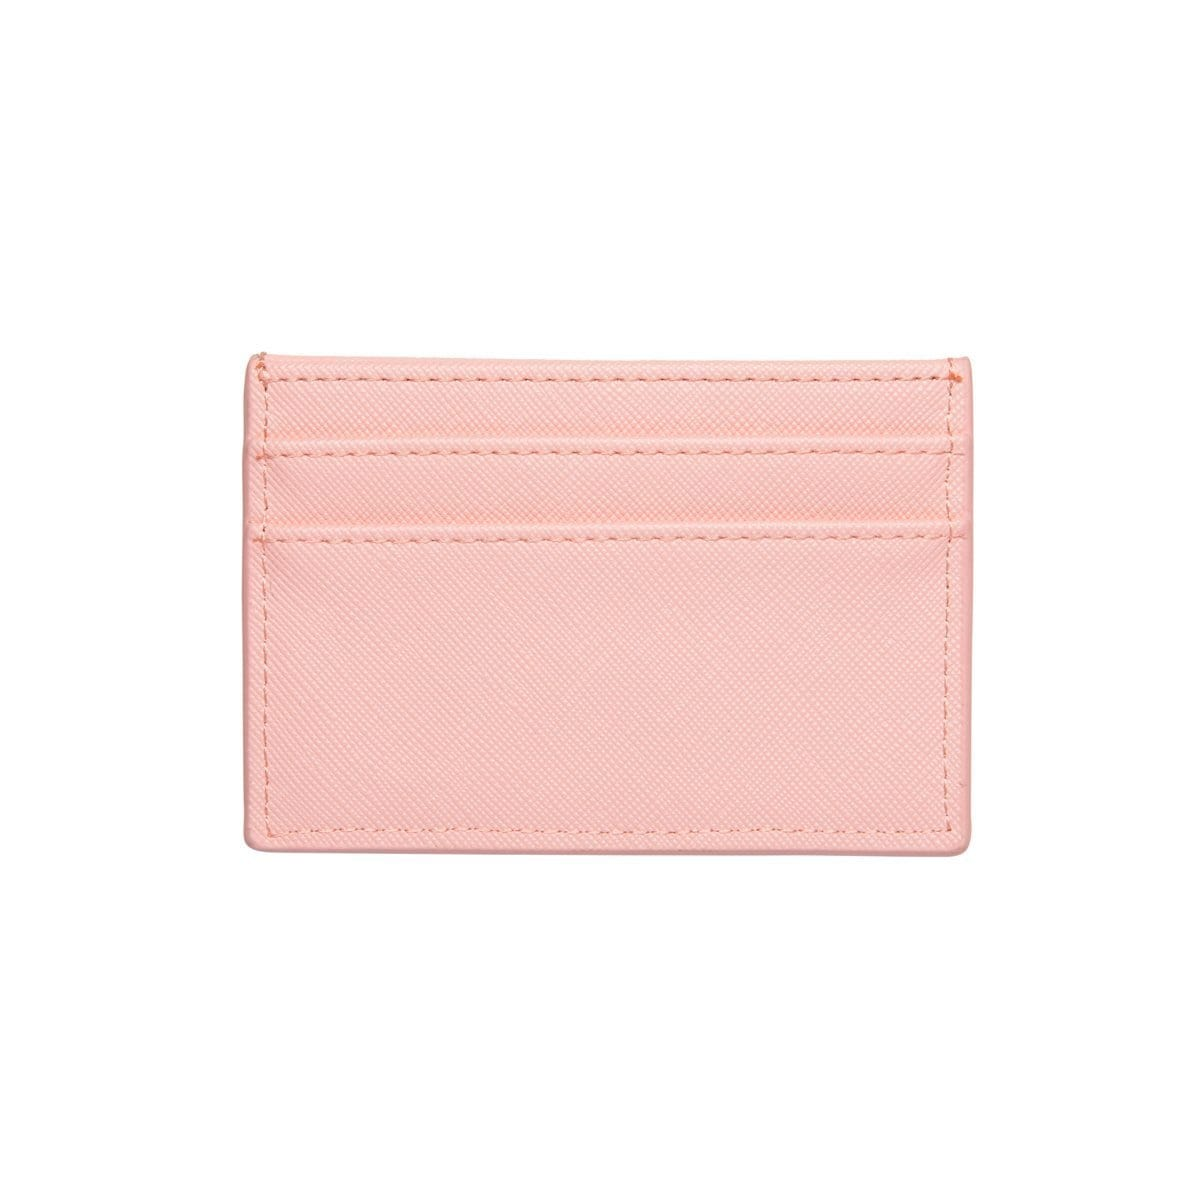 Rose Quartz Clea Card Holder